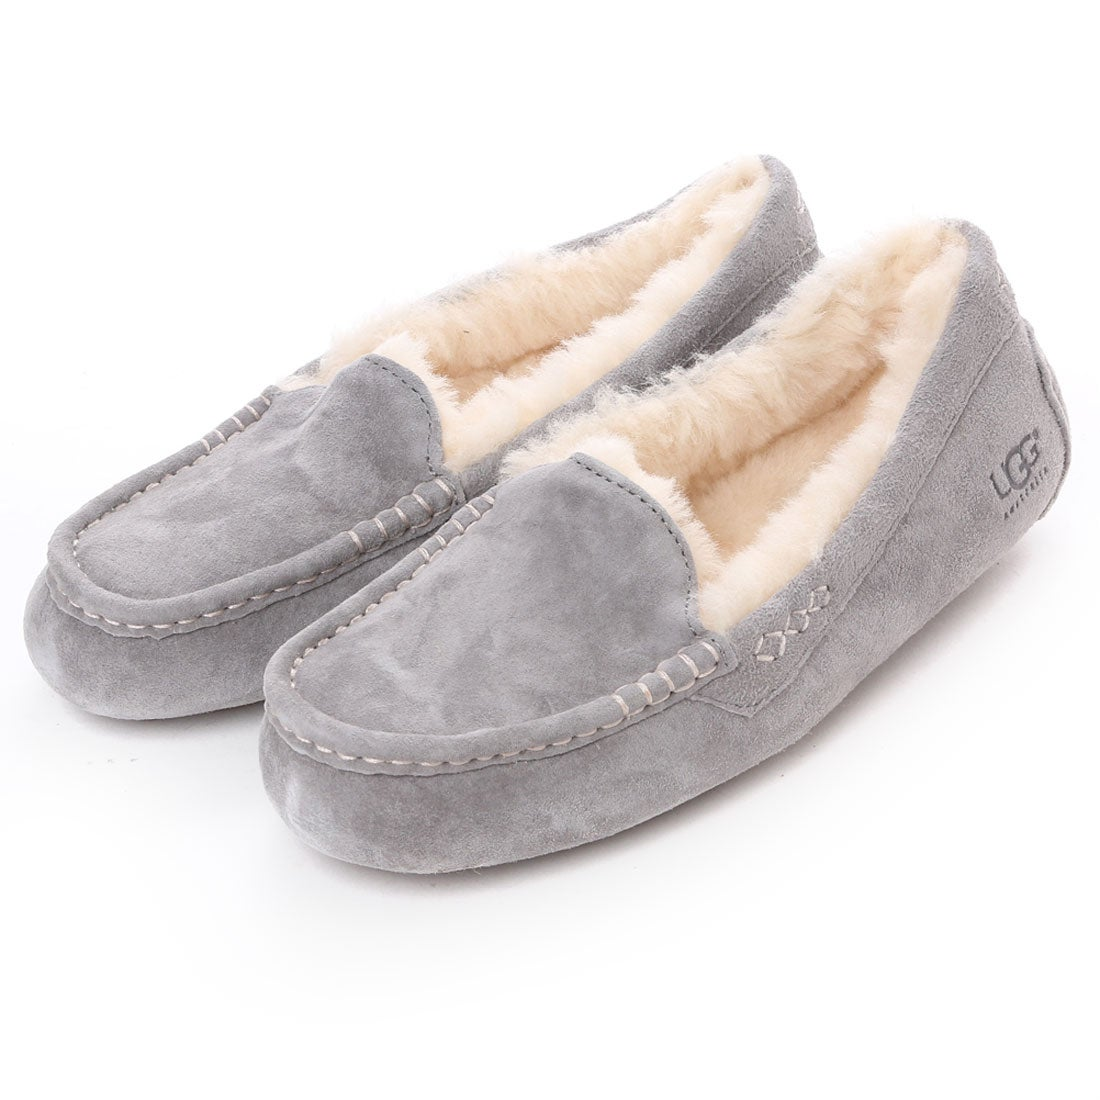 【SALE 15%OFF】アグ UGG Ansley (Light Grey) レディース